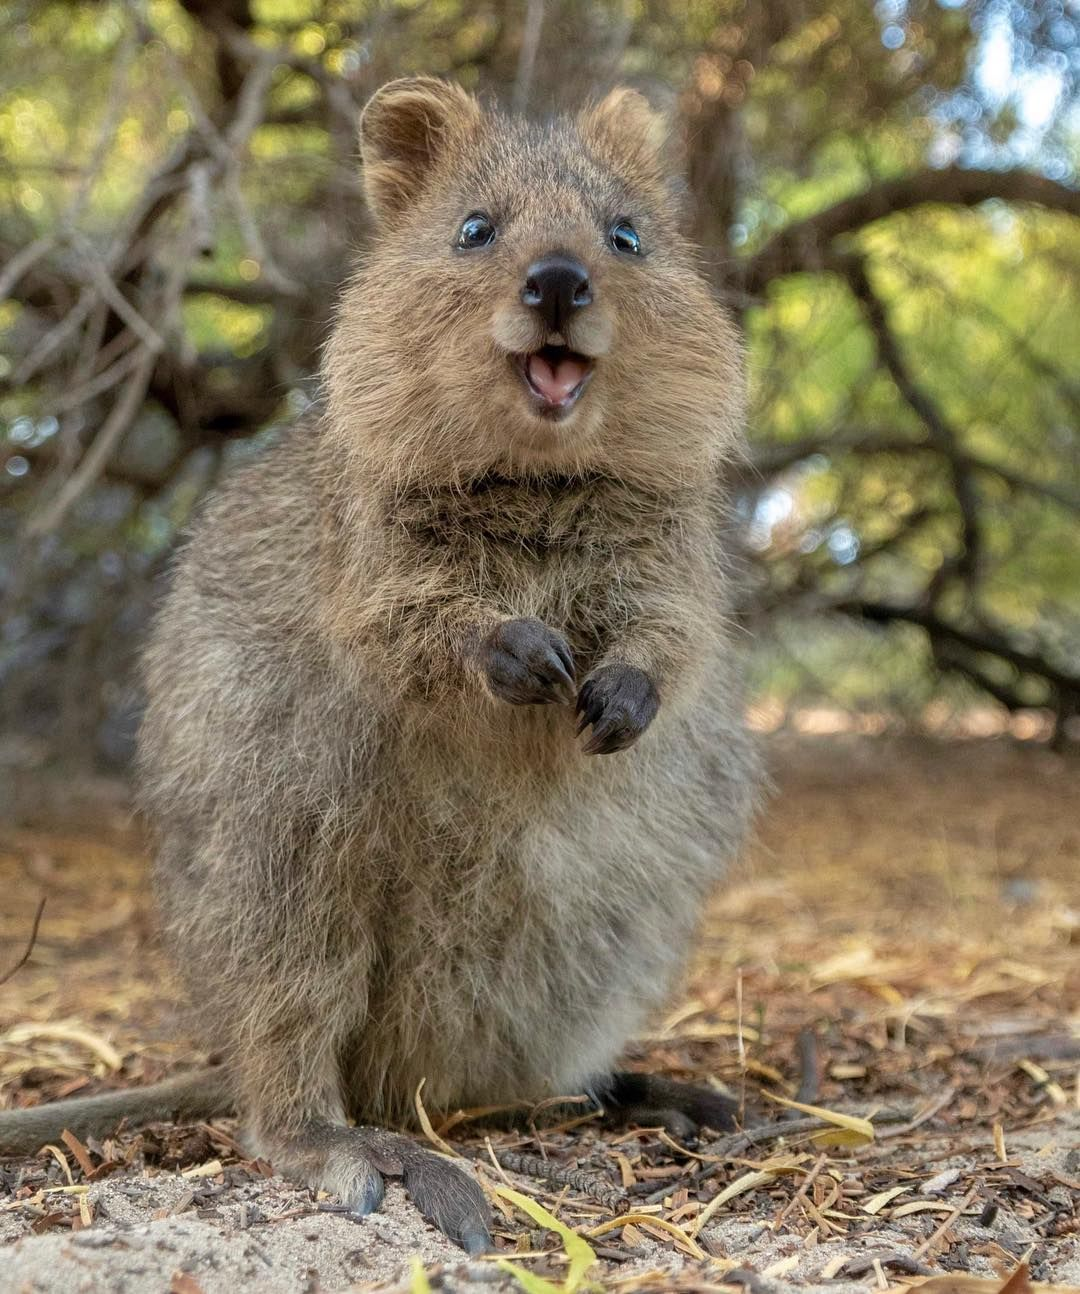 Good Morning Here S Some Cuteness To Start The Day With Rottnestislandwa Quokka Quokkas Animals Perthlife Lovemyperth Amaz Tame Animals Quokka Animals